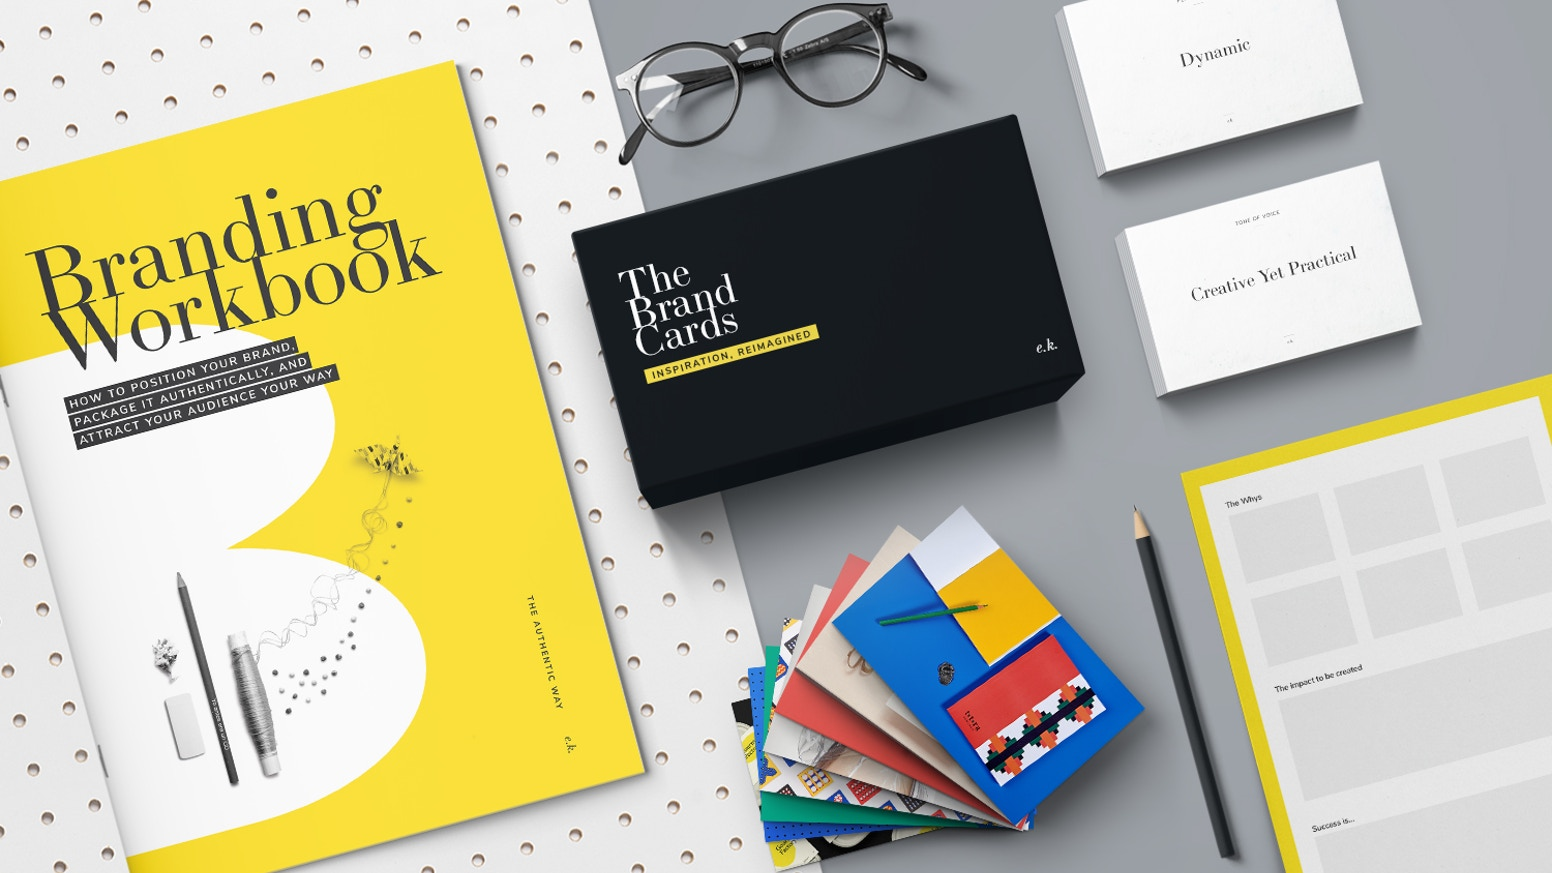 The Brand Strategy Kit enables designers and strategists to facilitate the branding process quickly, playfully, and successfully.